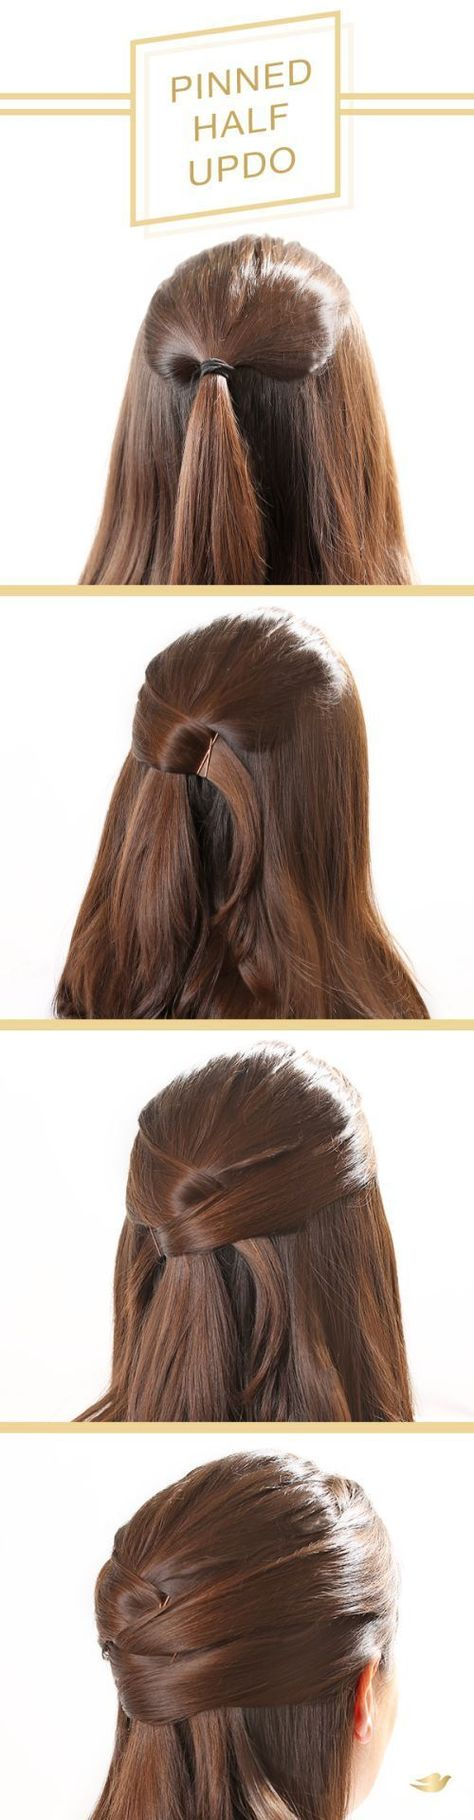 200+ Best Cute Braided Hairstyle images | hairstyle, hair styles, long hair  styles